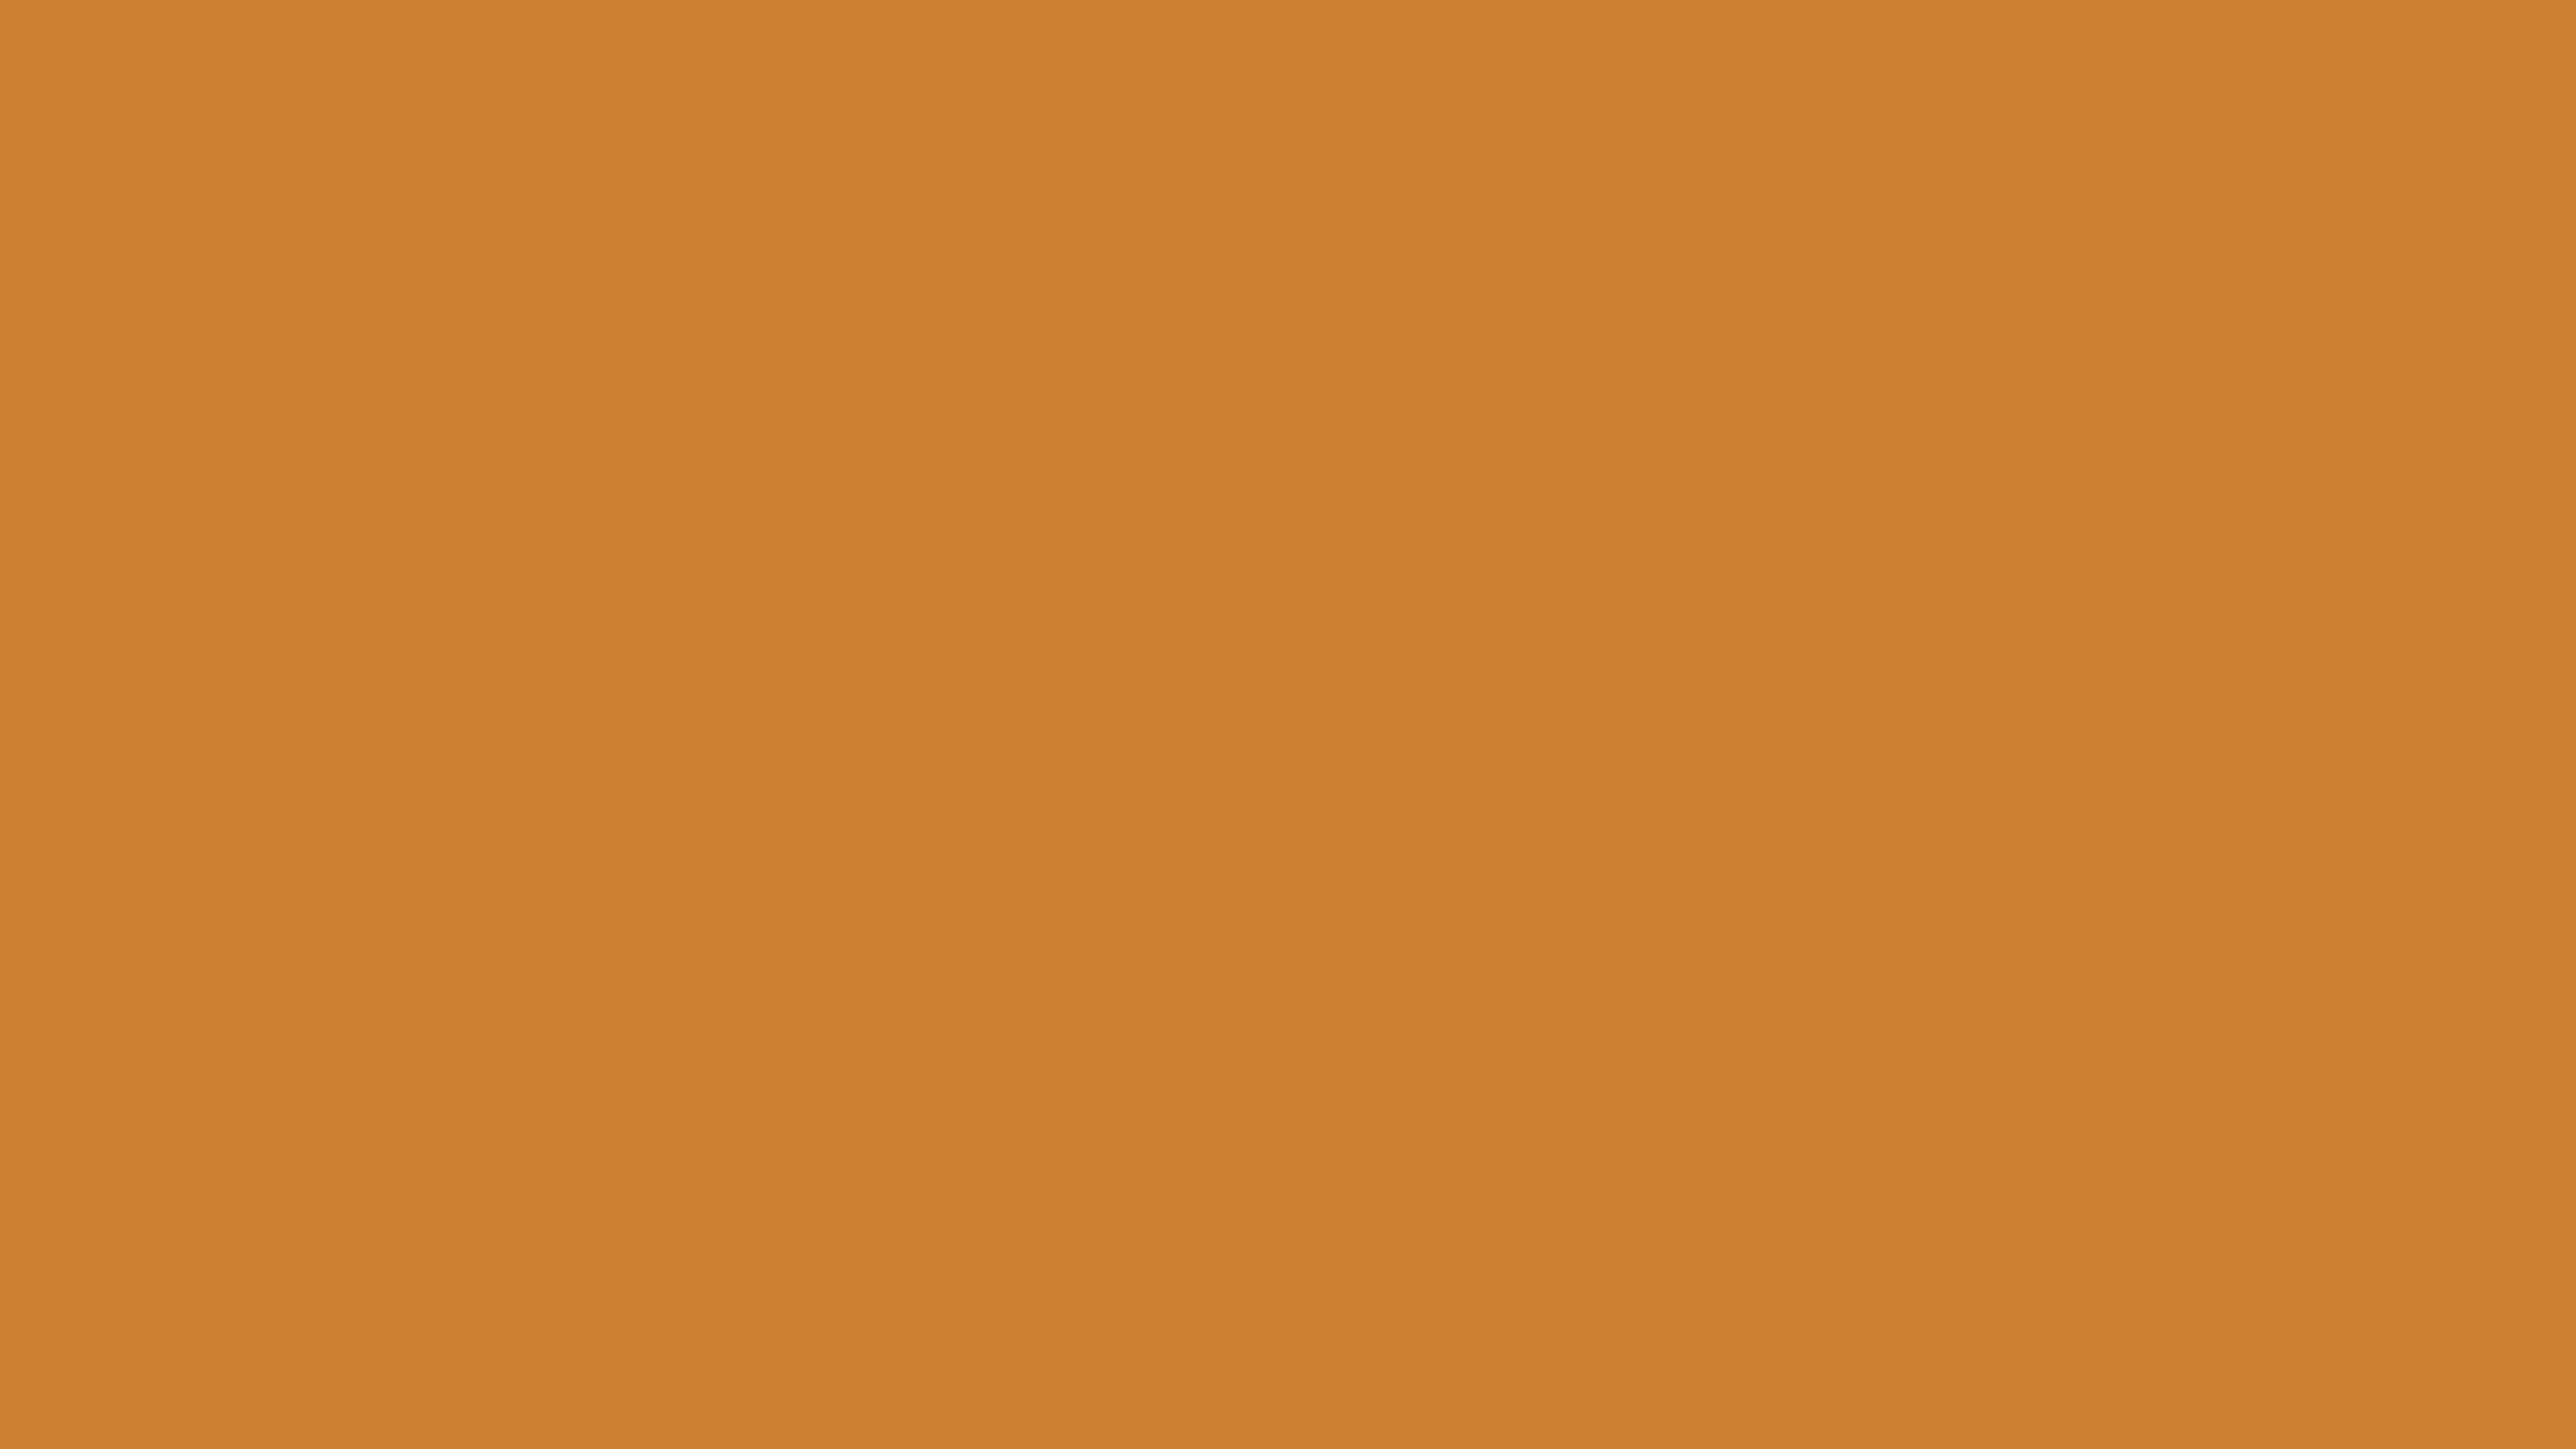 3840x2160 Bronze Solid Color Background